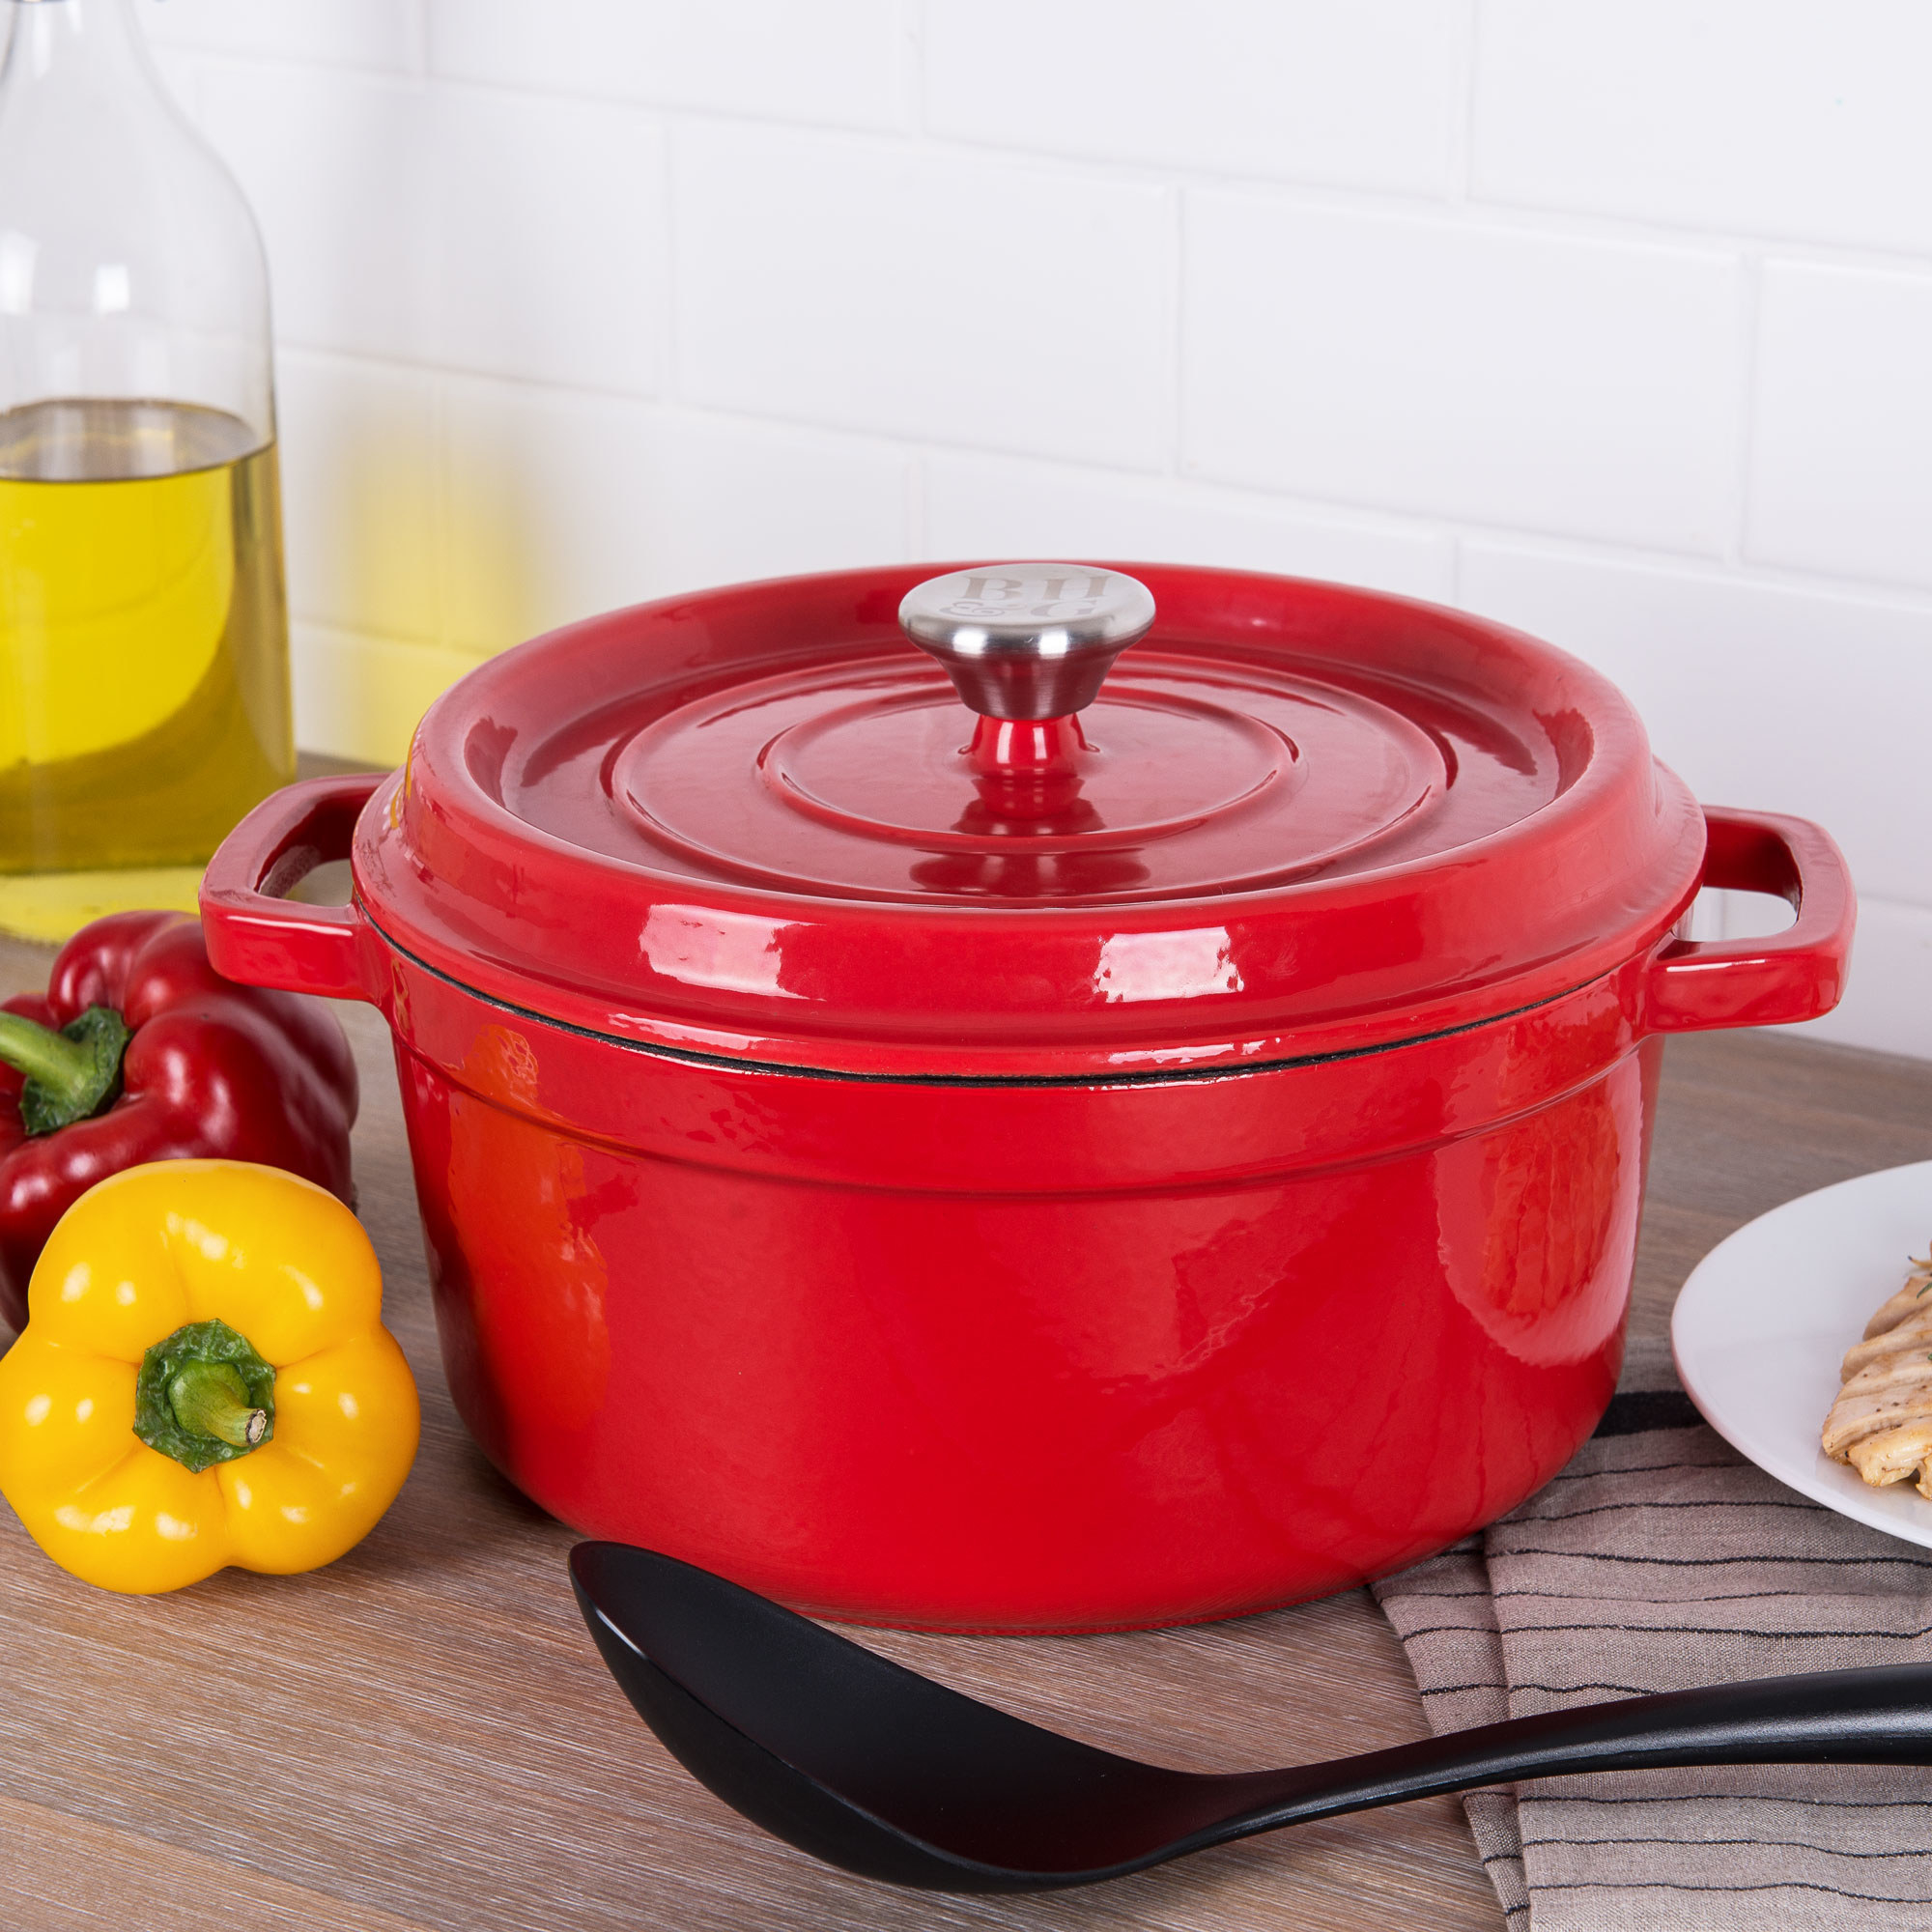 red dutch oven on counter with vegetables around it